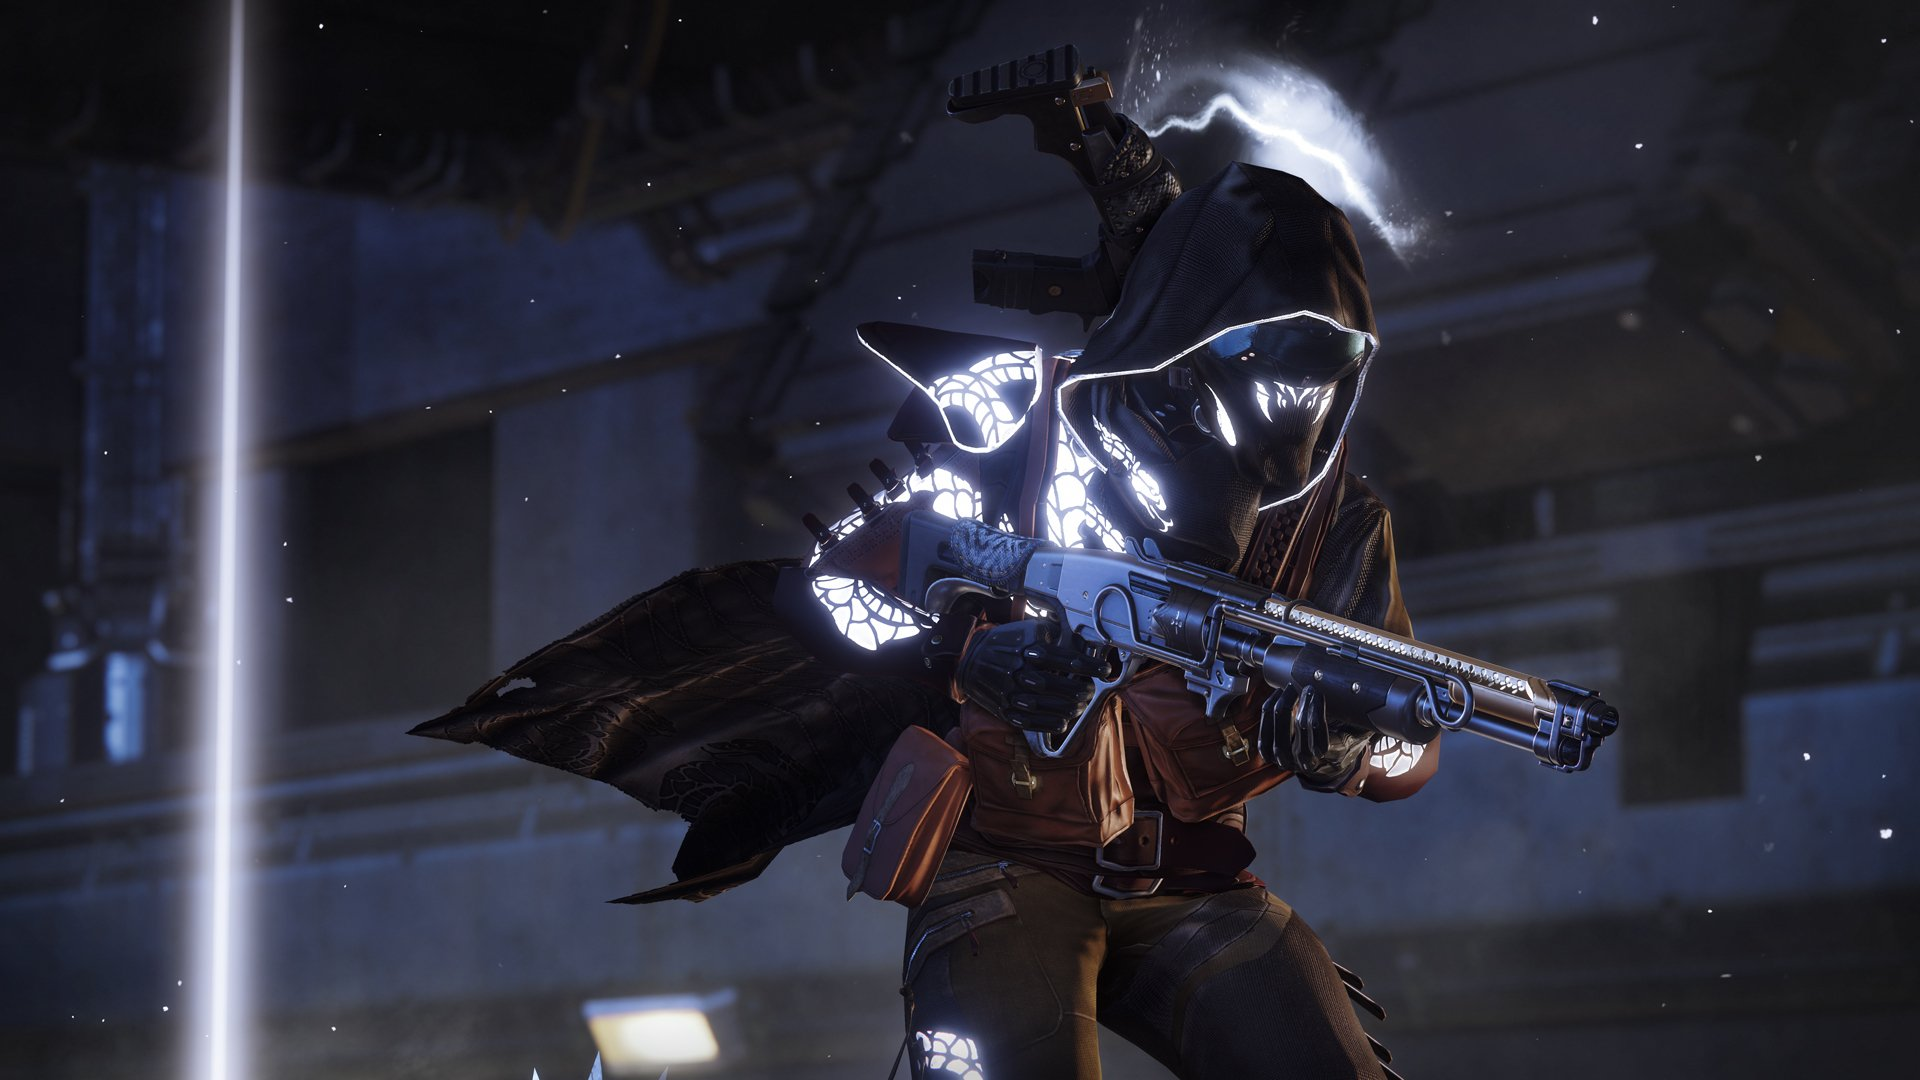 To get a Reaper Synth in Destiny 2: Season of the Drifter, you'll either need to complete bounties via Gambit Prime, or matches in The Reckoning.